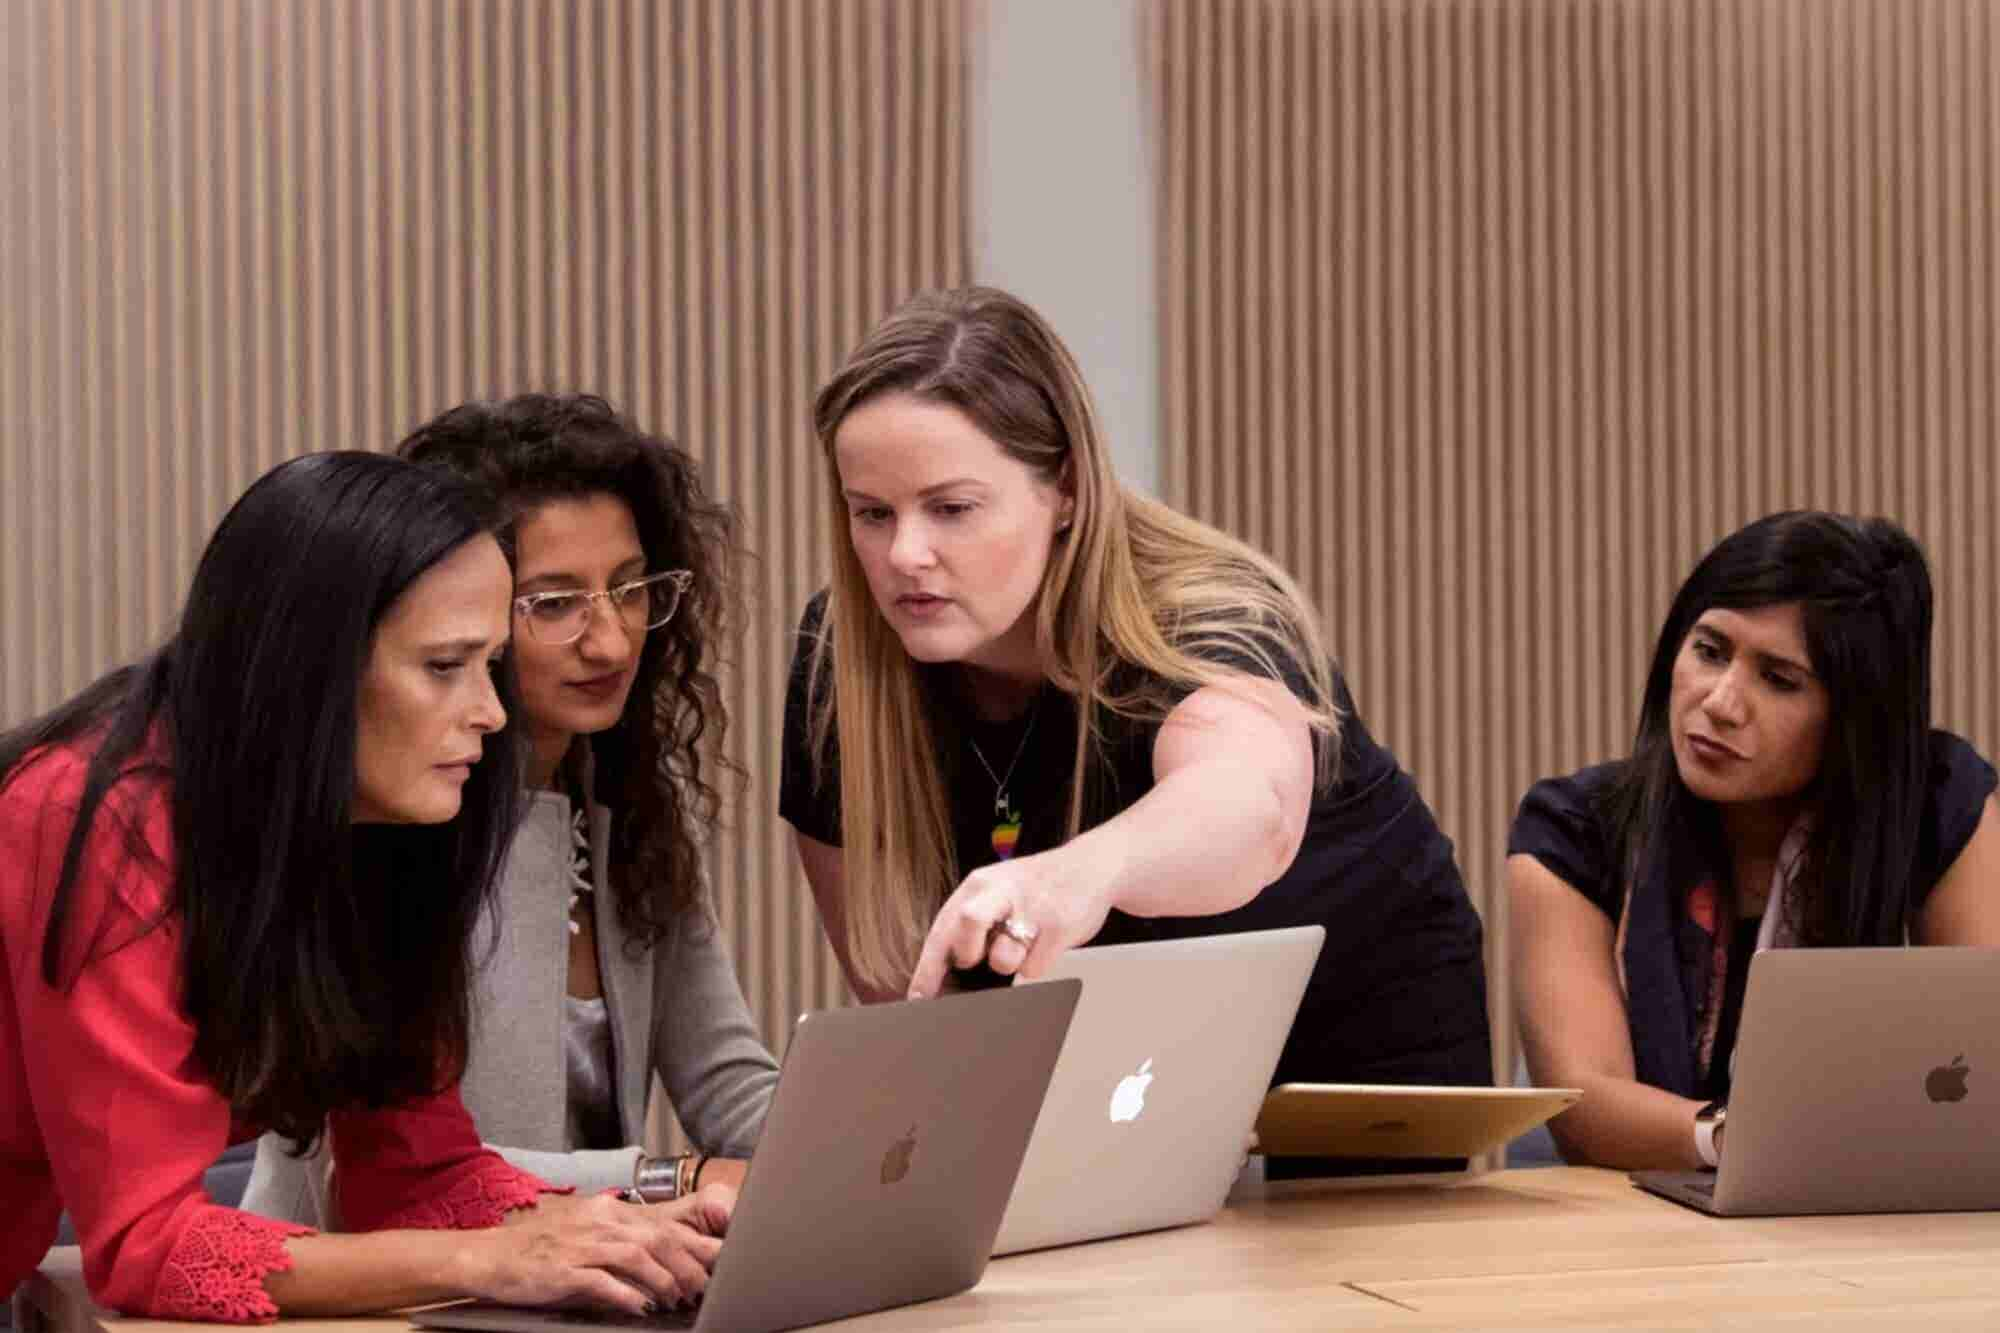 Apple Entrepreneur Camp Launches to Help Women App Developers